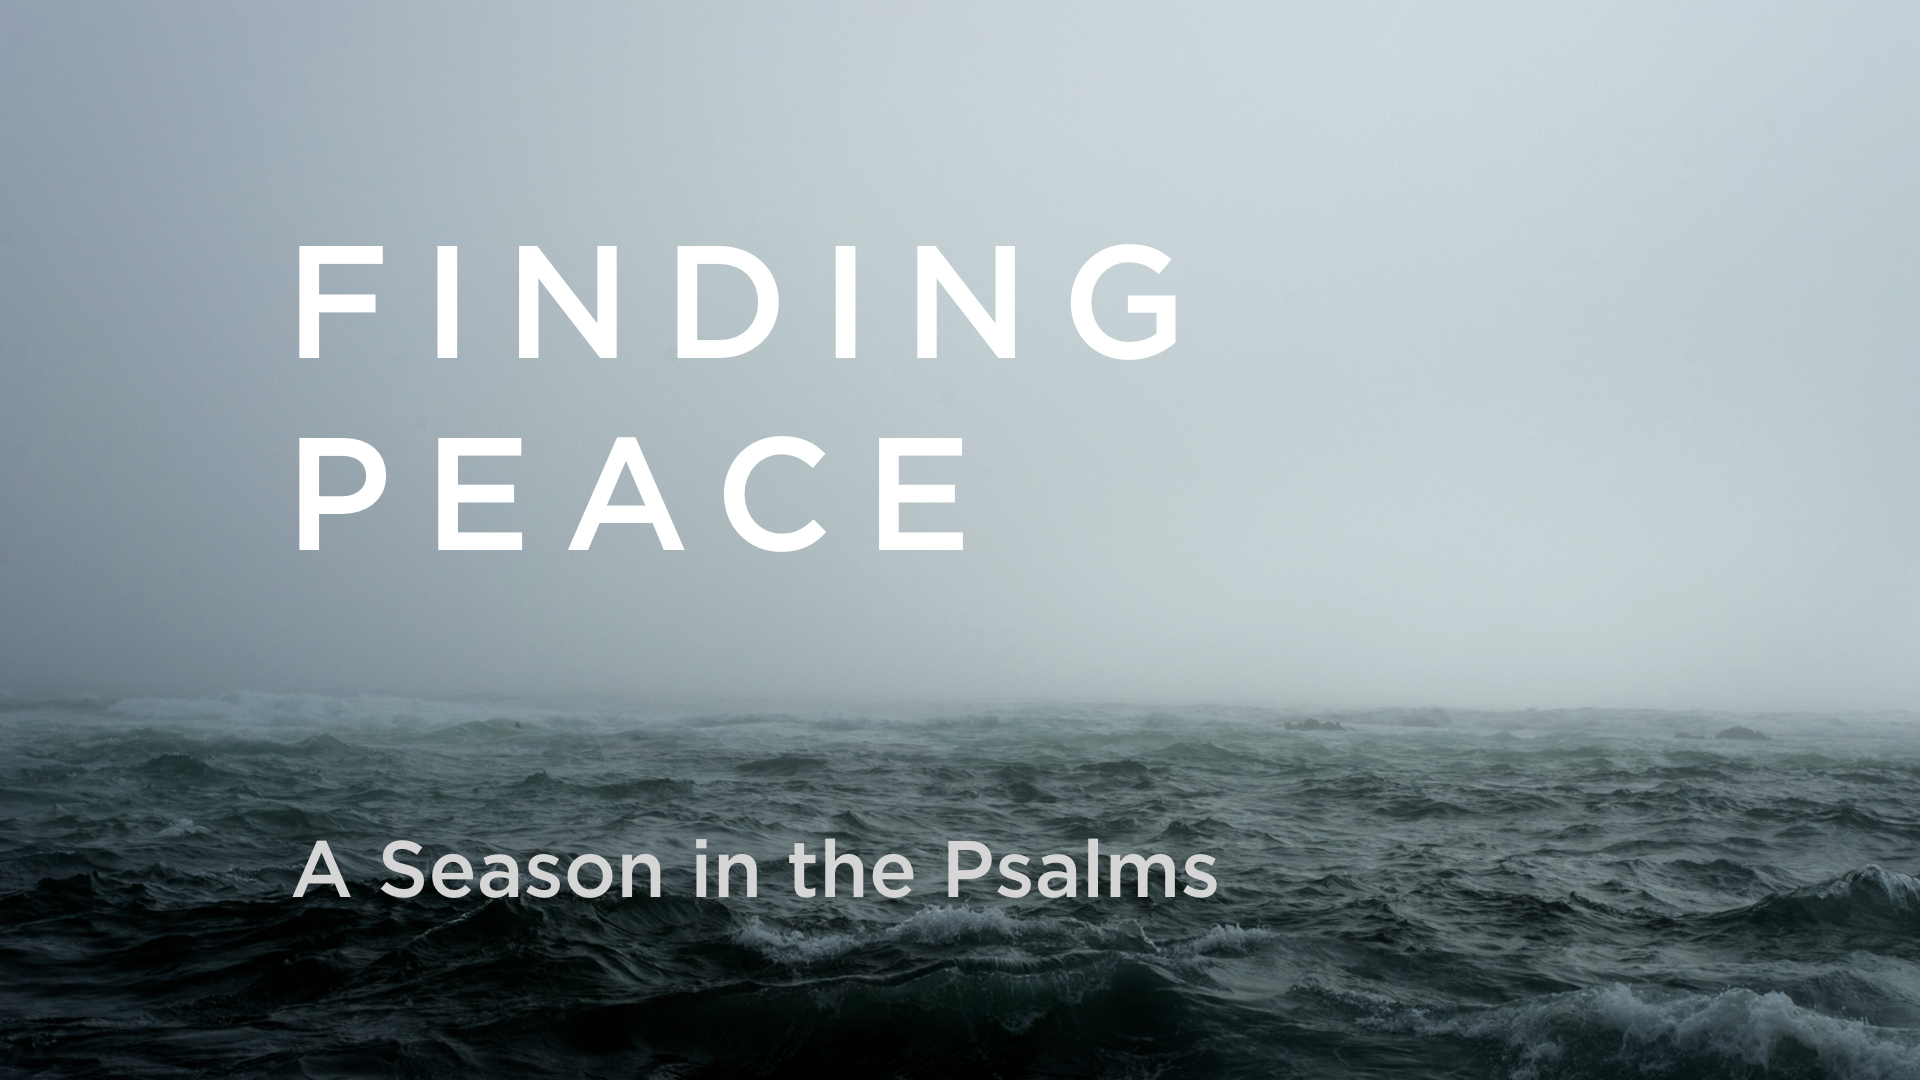 Finding Peace: A Season in the Psalms